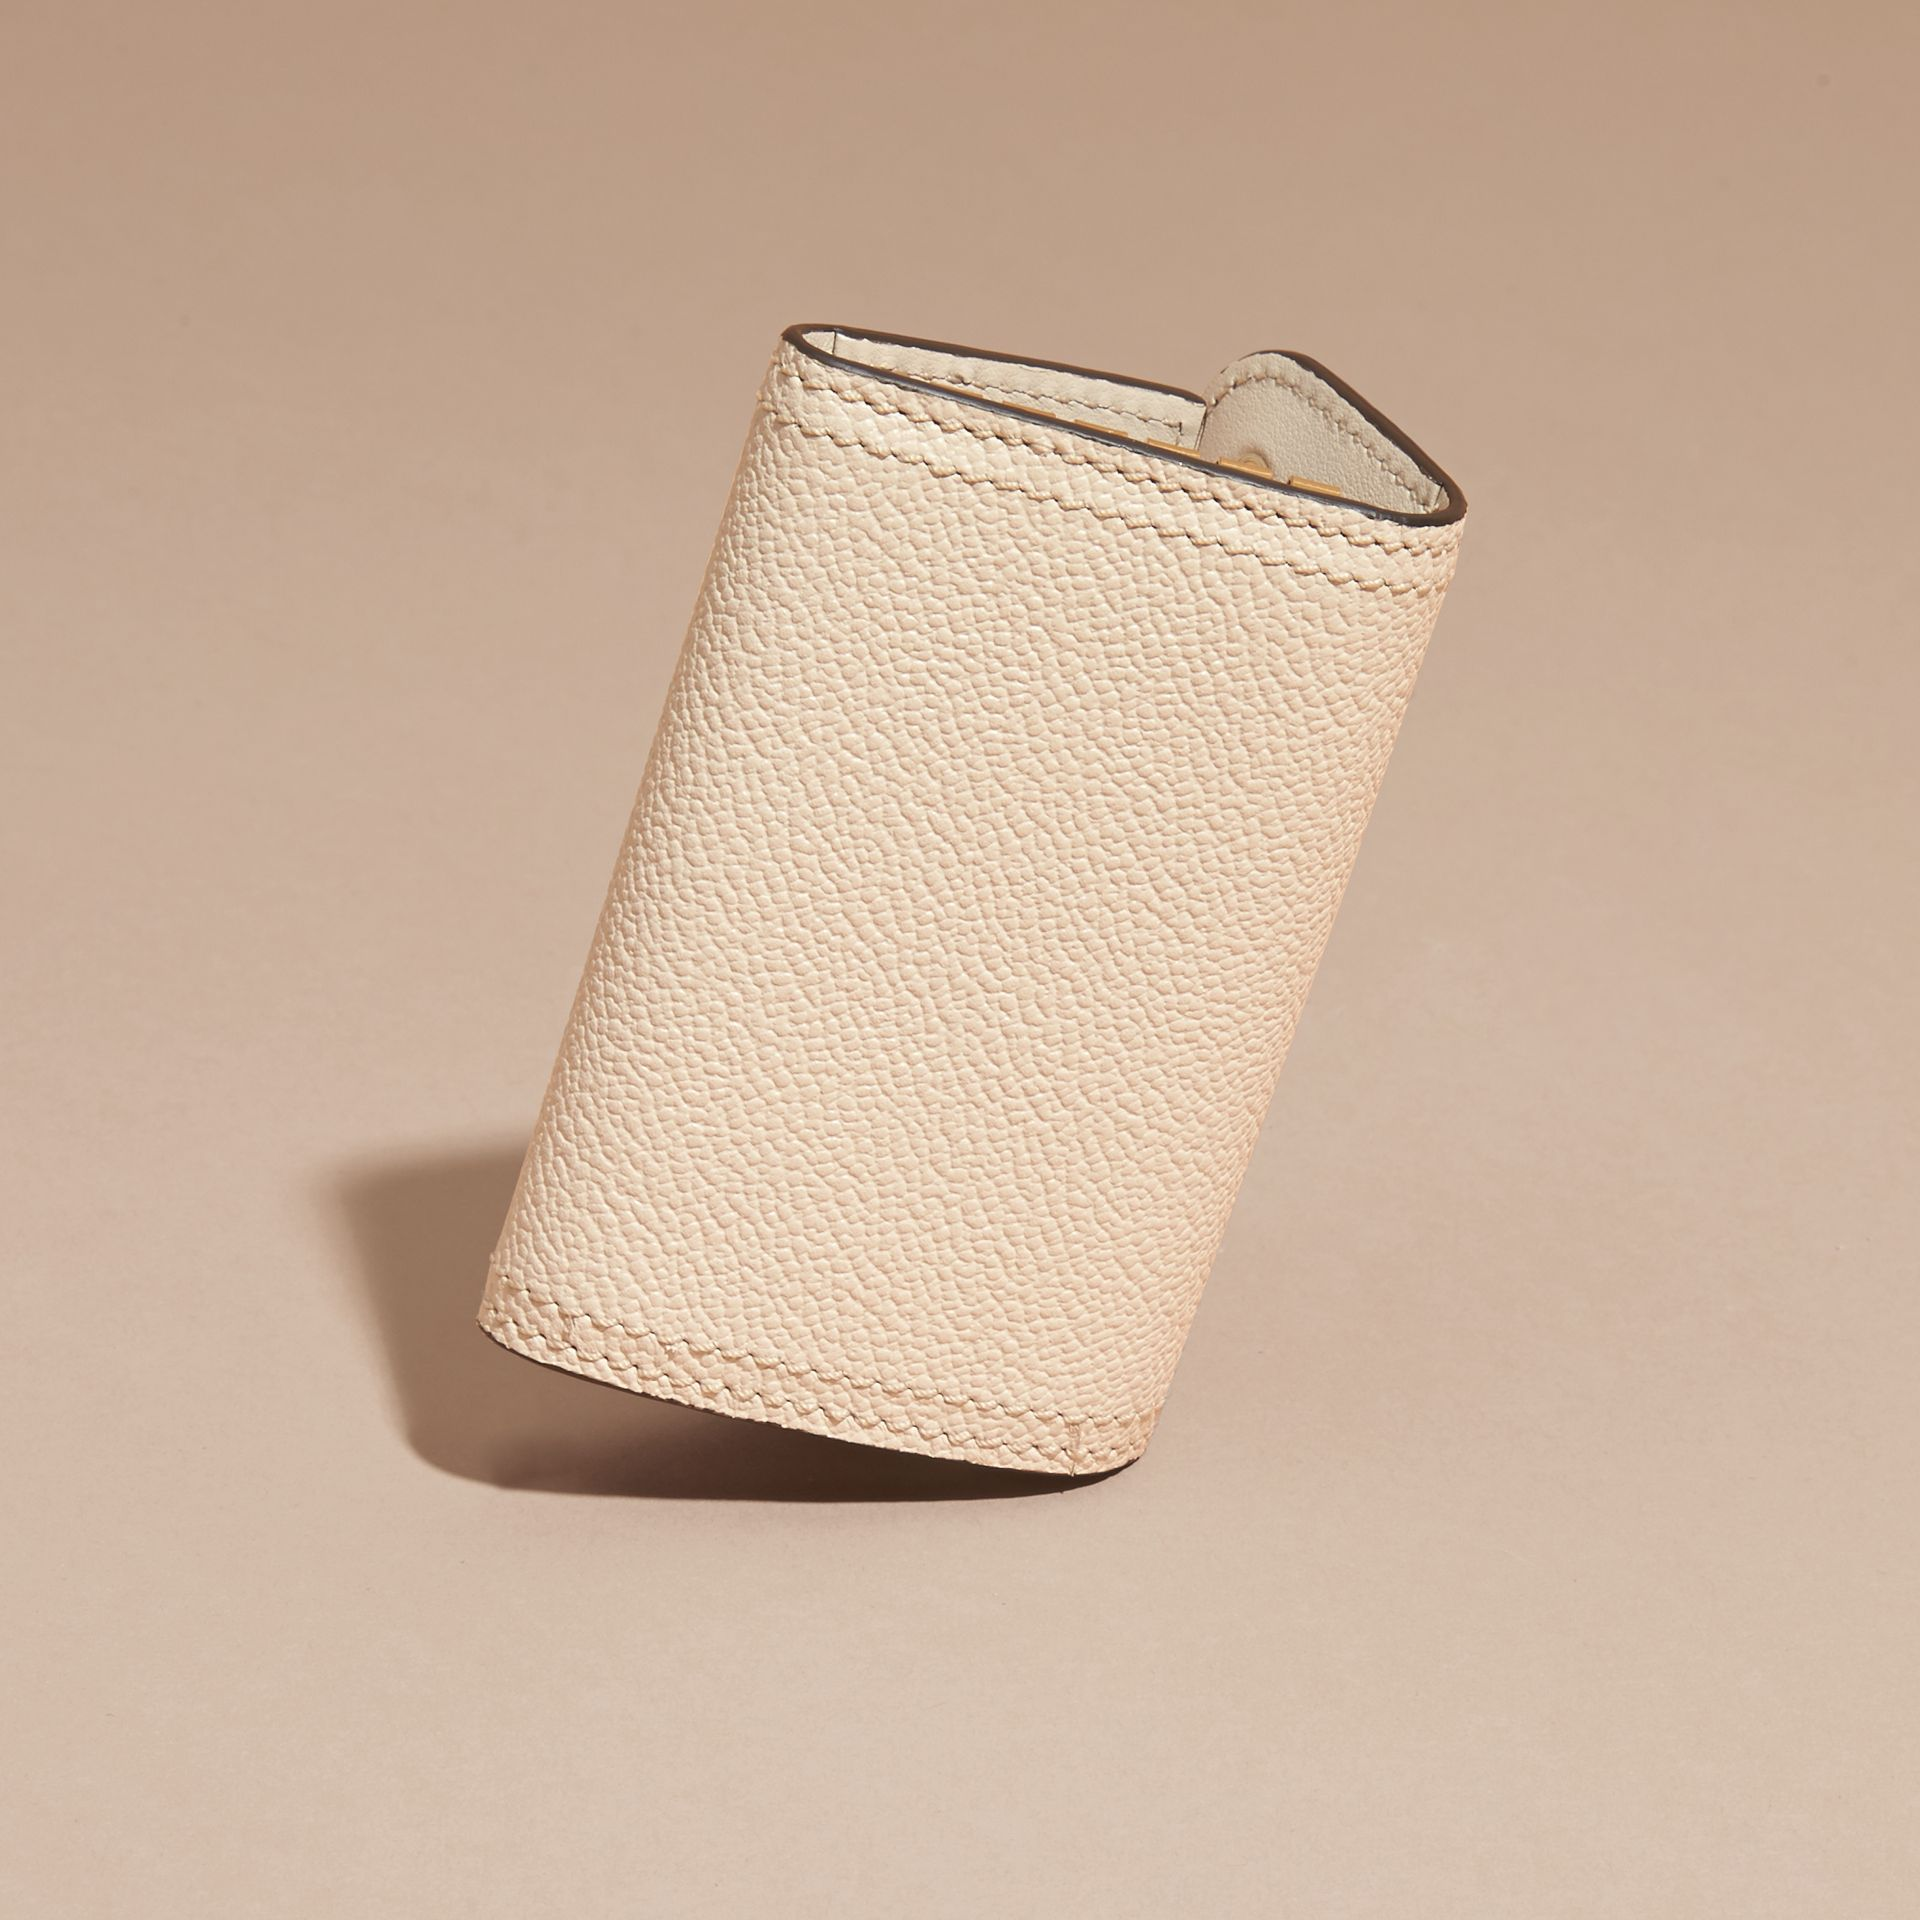 Grainy Leather Key Holder in Limestone - Women | Burberry - gallery image 4